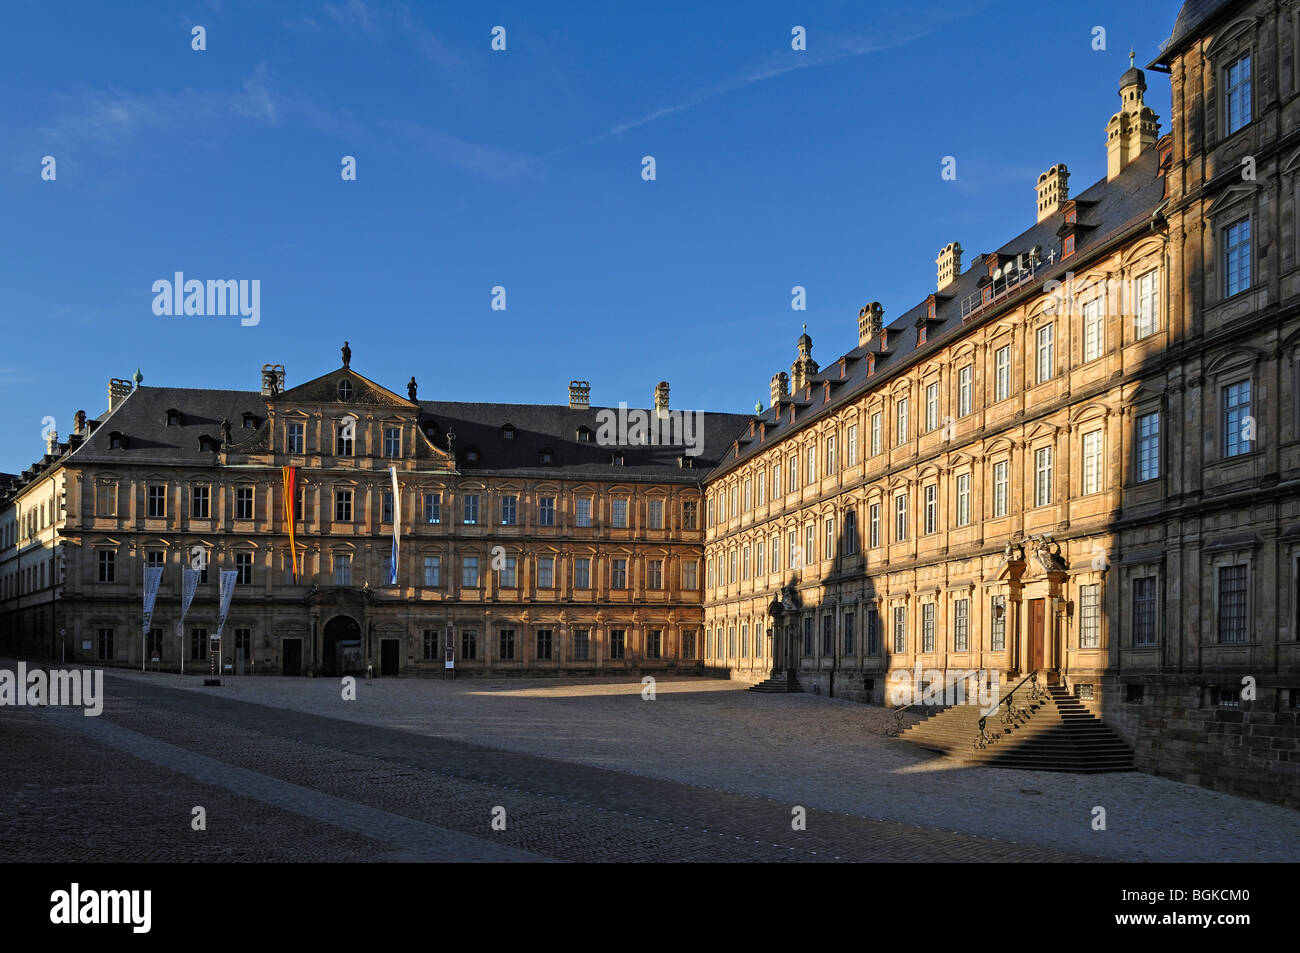 The Neue Residenz palace, Baroque, built from 1697 to 1703, with Domplatz square in the late evening light, Domplatz - Stock Image